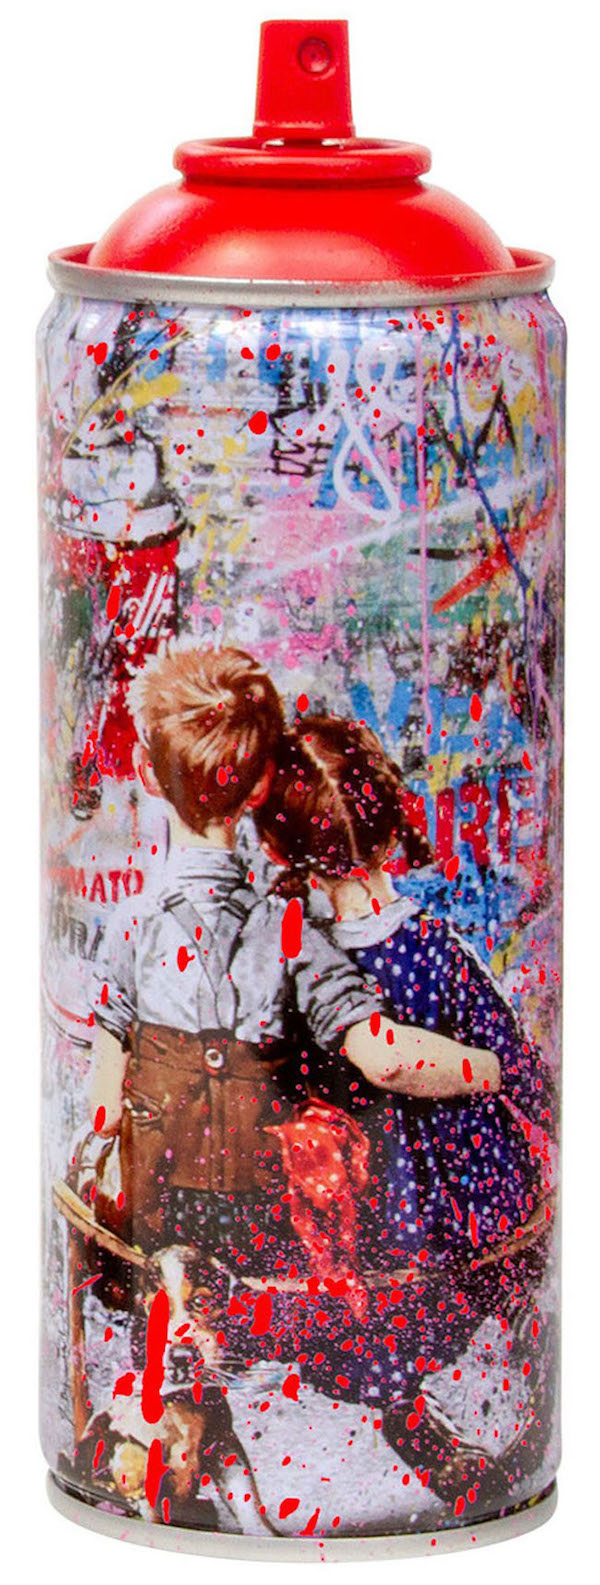 Deodato Art_visual_Mr. Brainwash, Spray Can - Work Well Together, Stencil and spray paint on spray can in alluminium, 6.3x19 cm, 350 euro